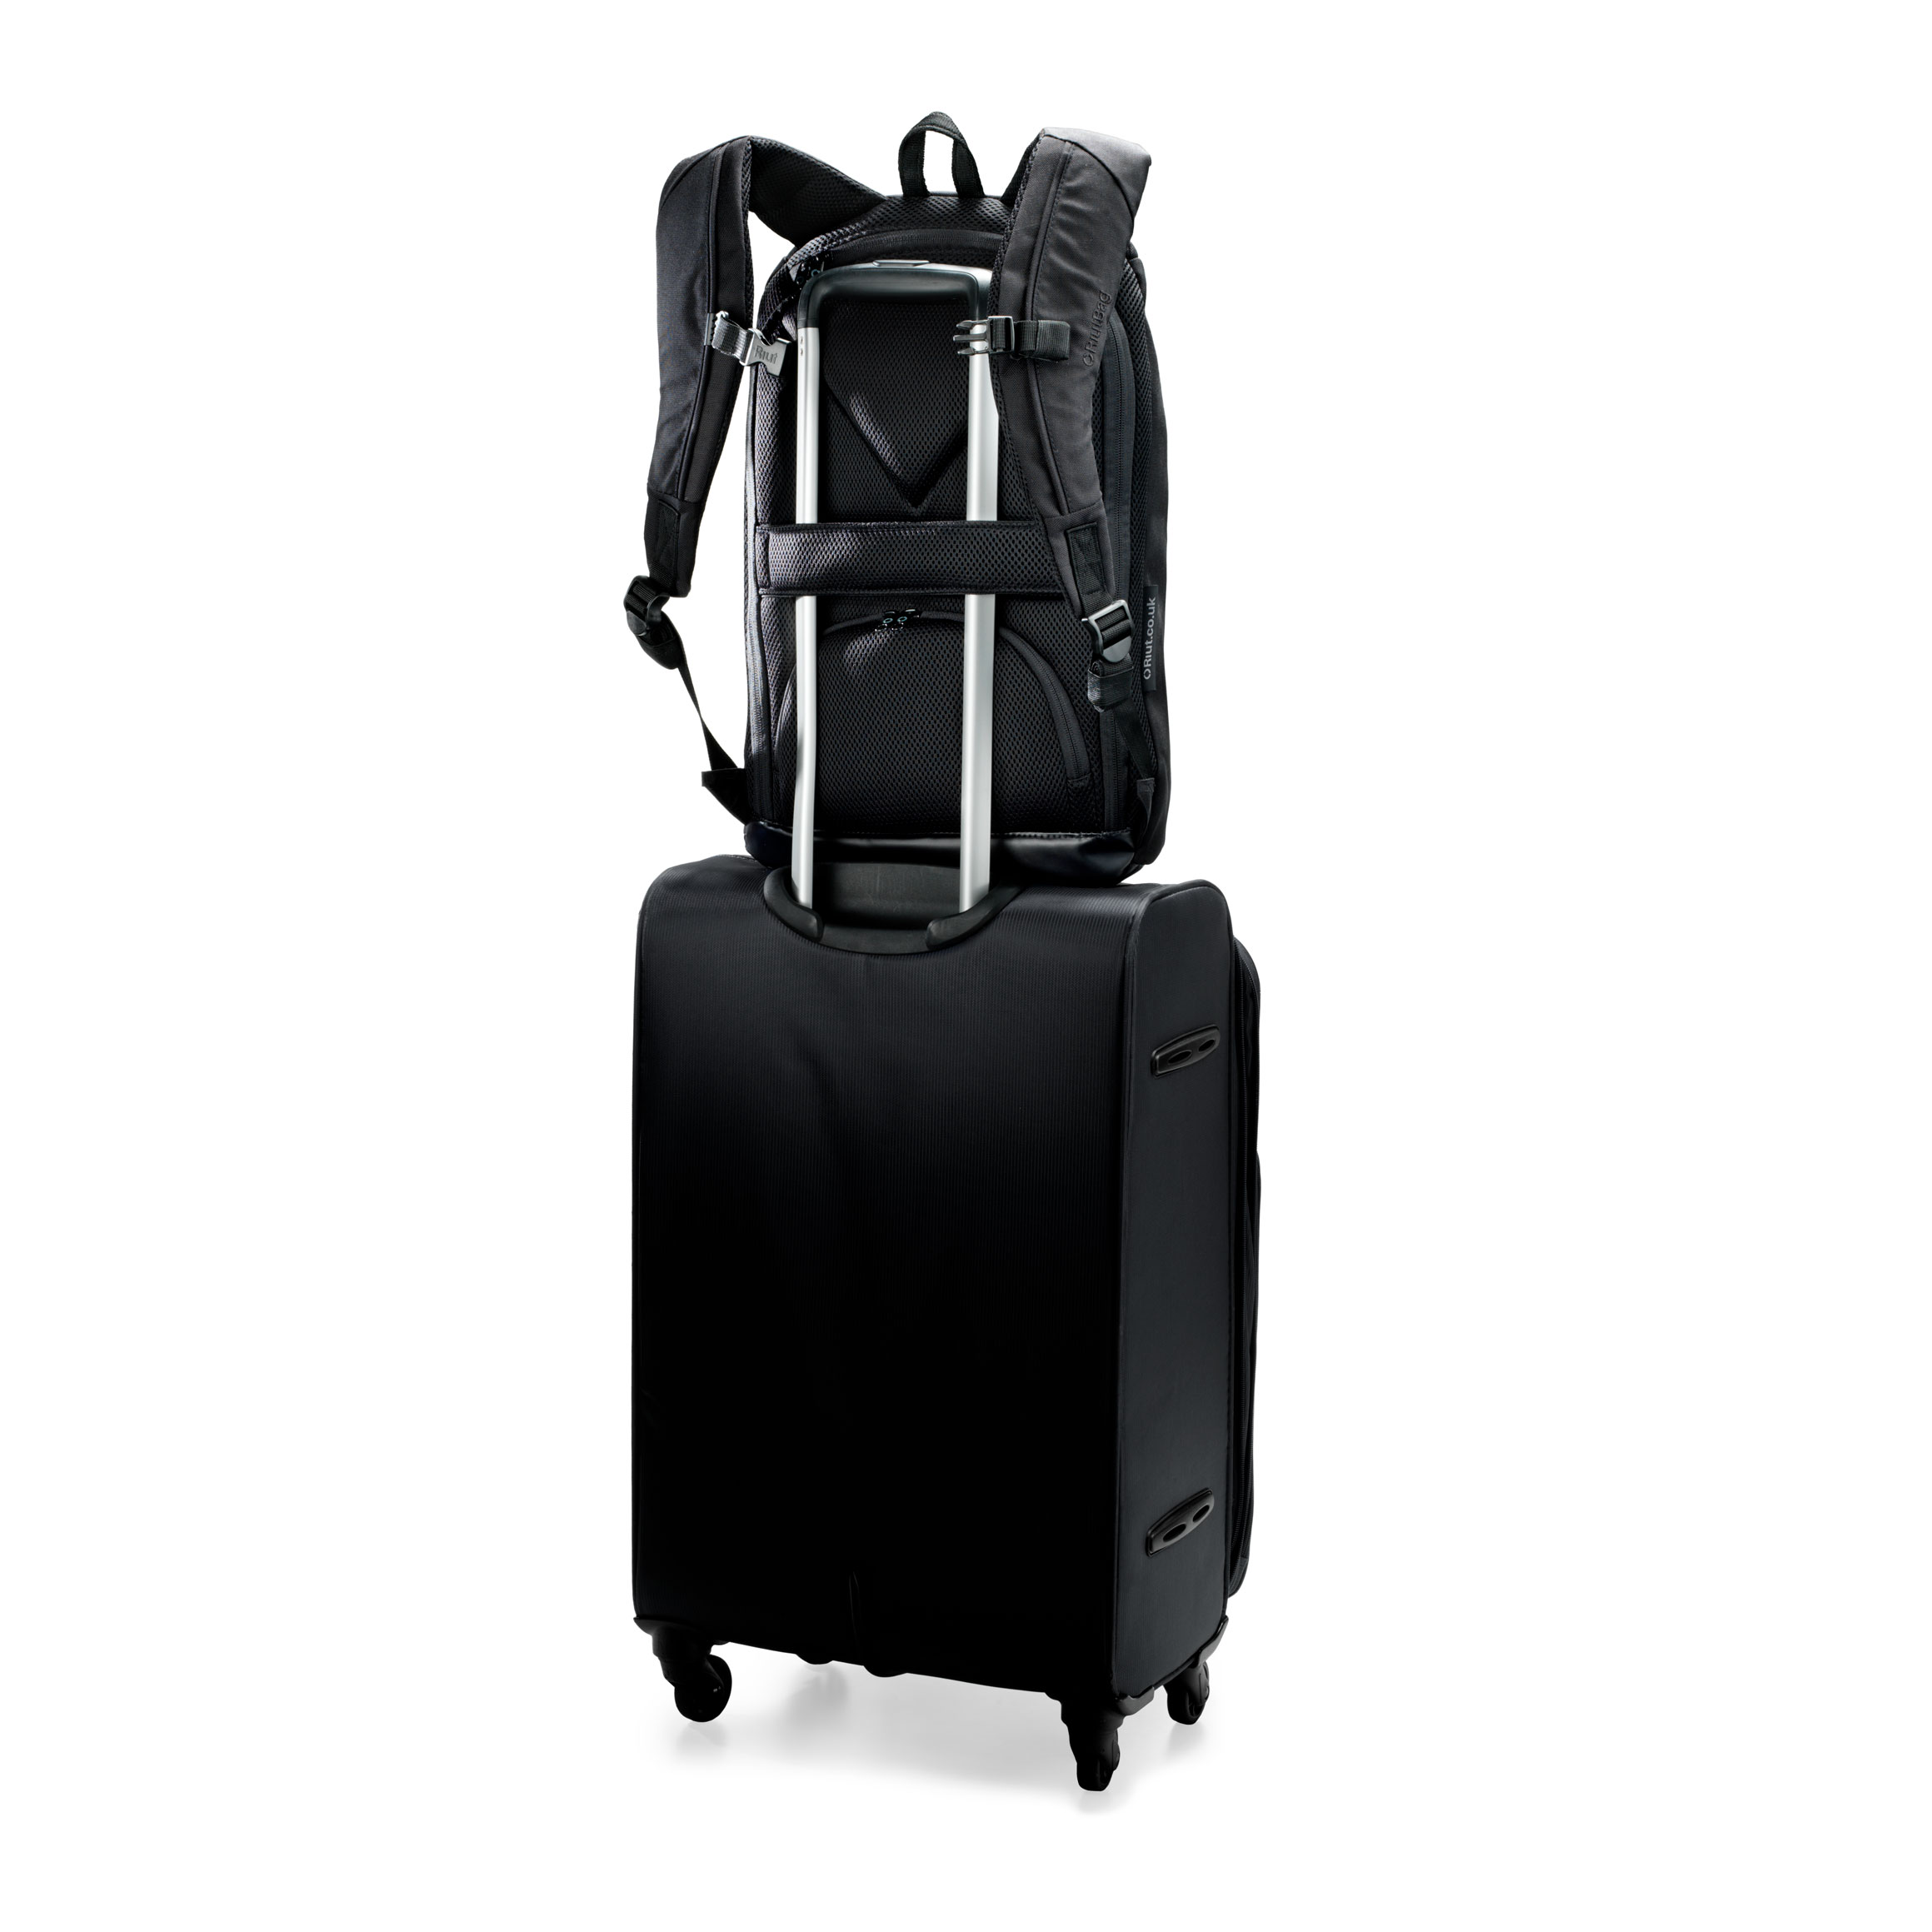 Trolley suitcase strap on the new 2016 RiutBag R10